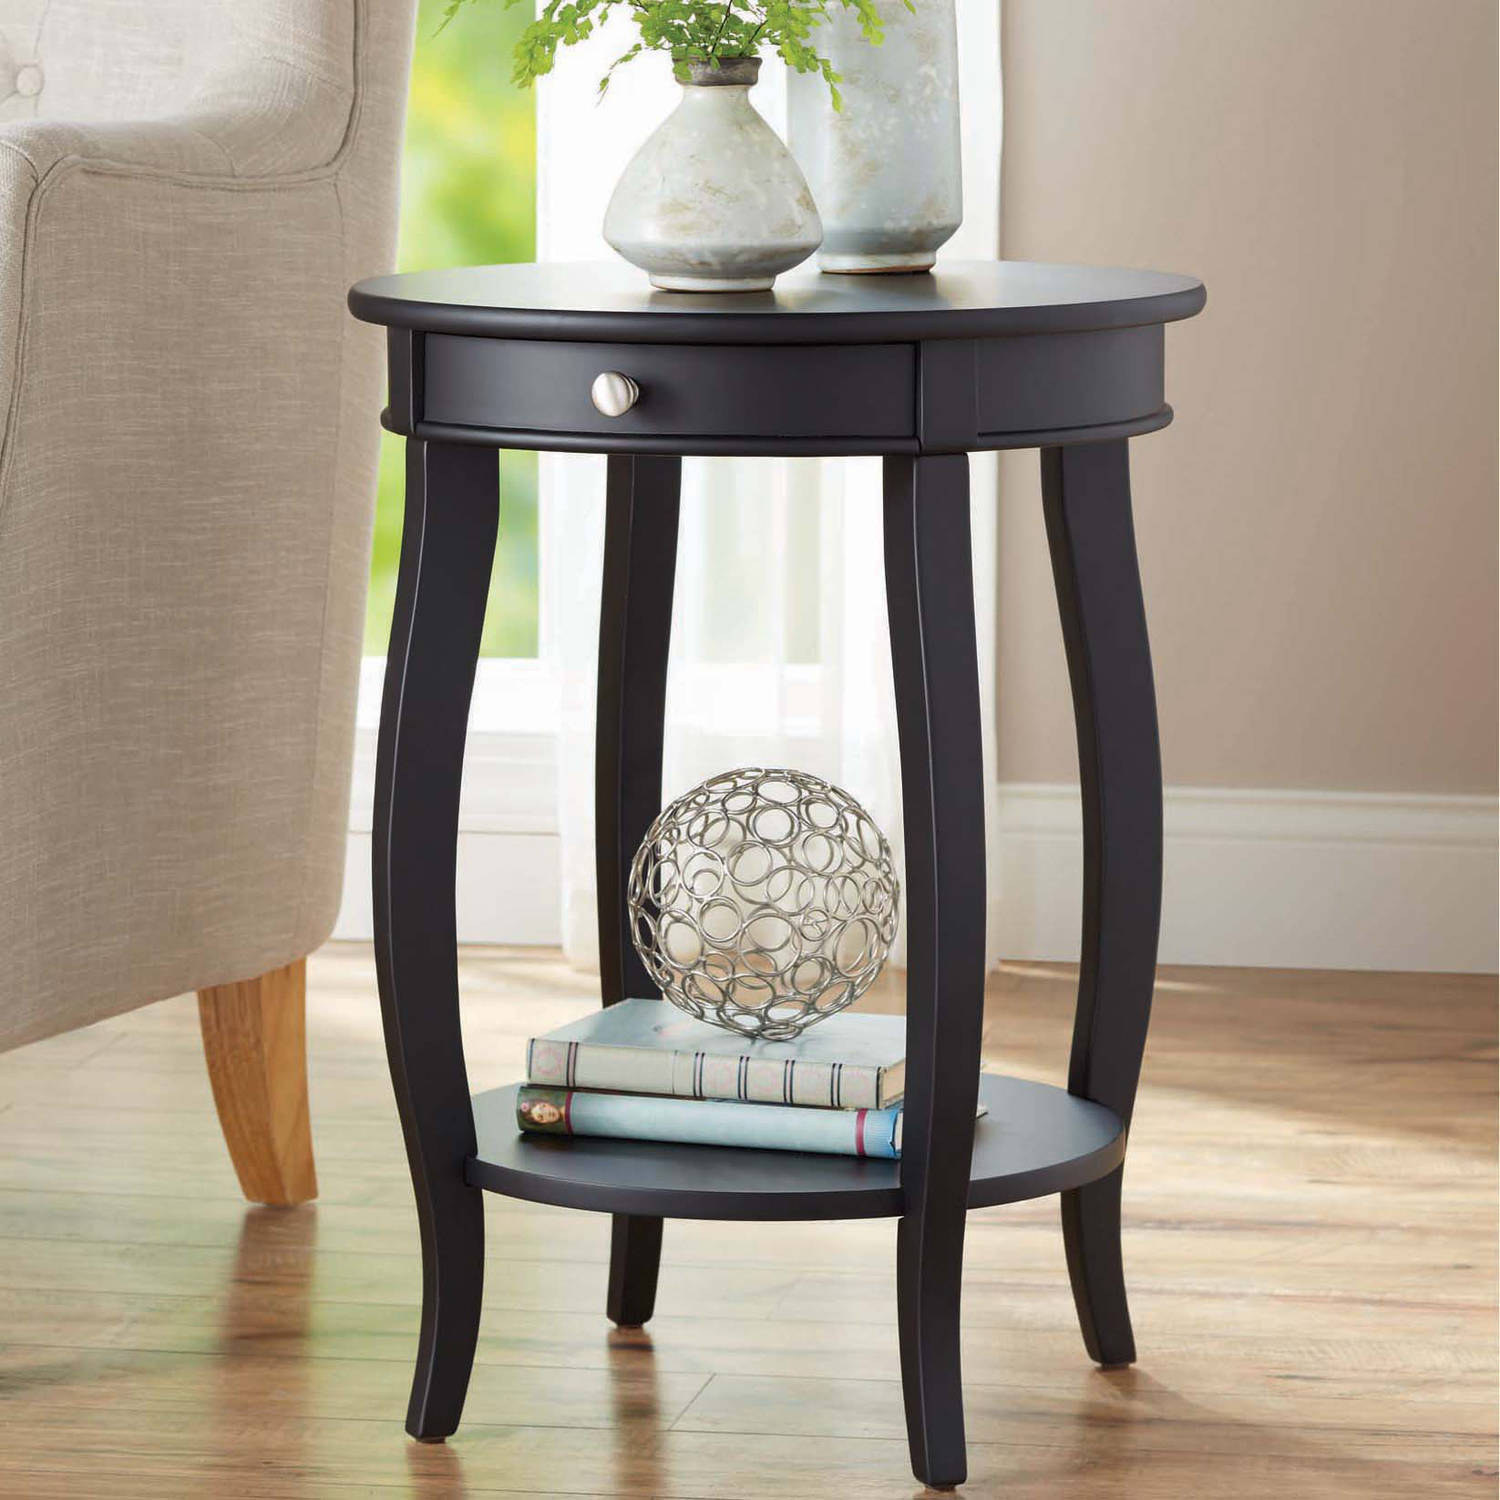 better homes gardens round accent table with drawer multiple side colors trestle chairs small crystal lamps school years ture frame white marble nesting tables teal entryway black